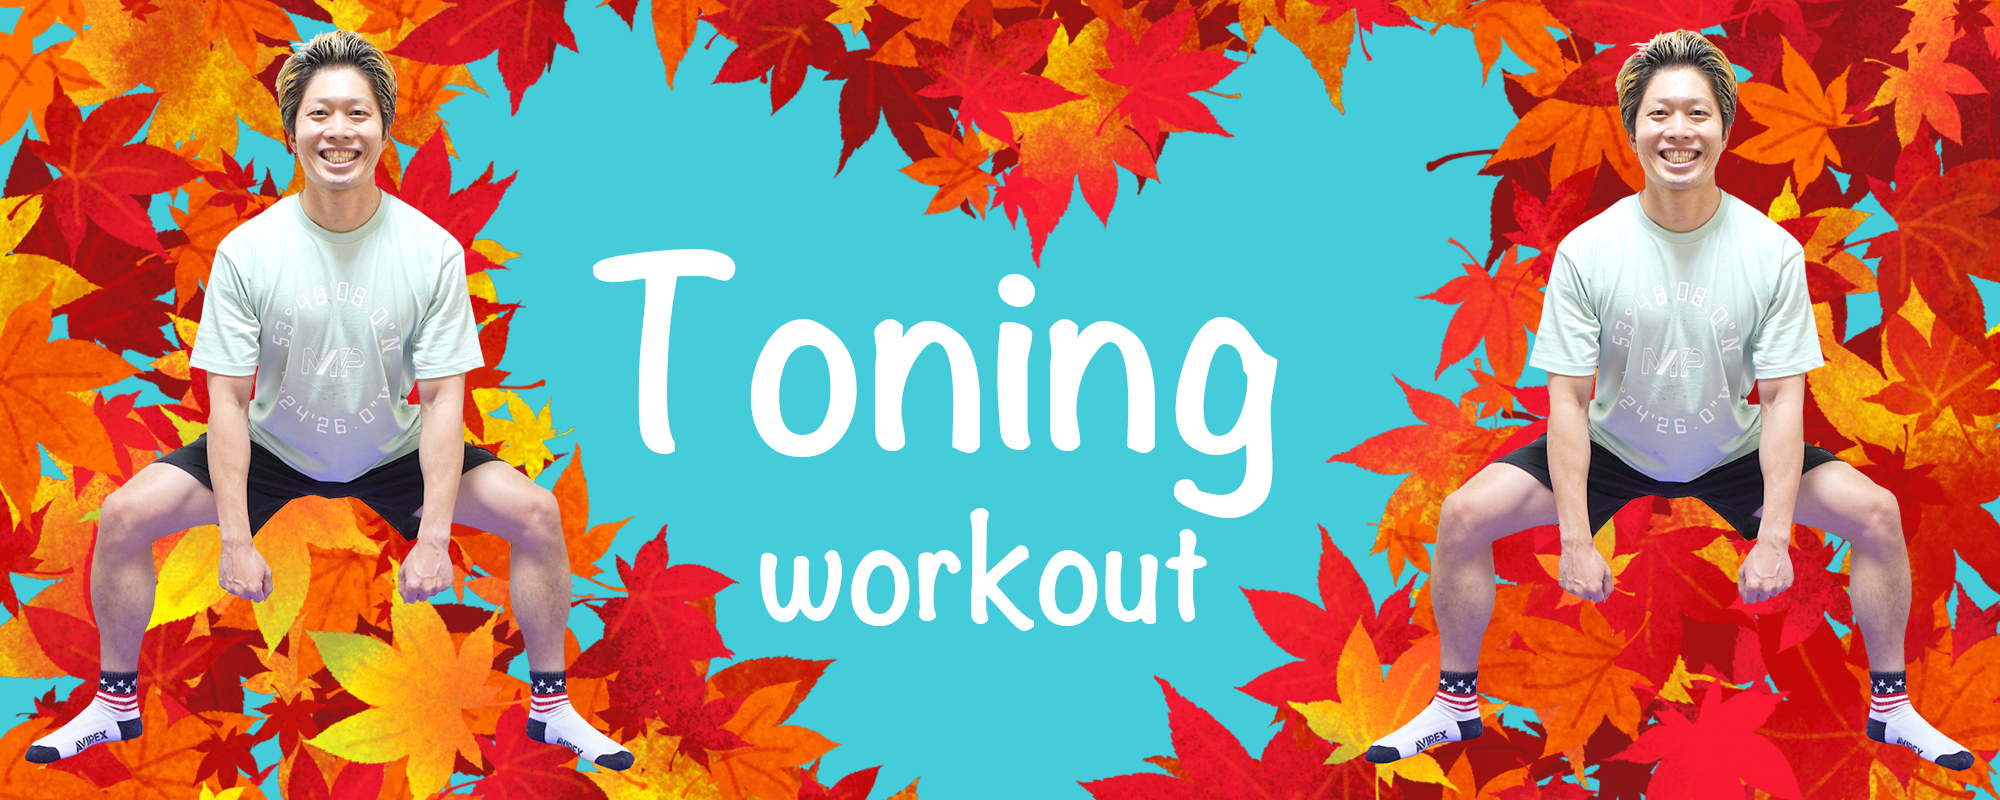 Toning 4 weeks program